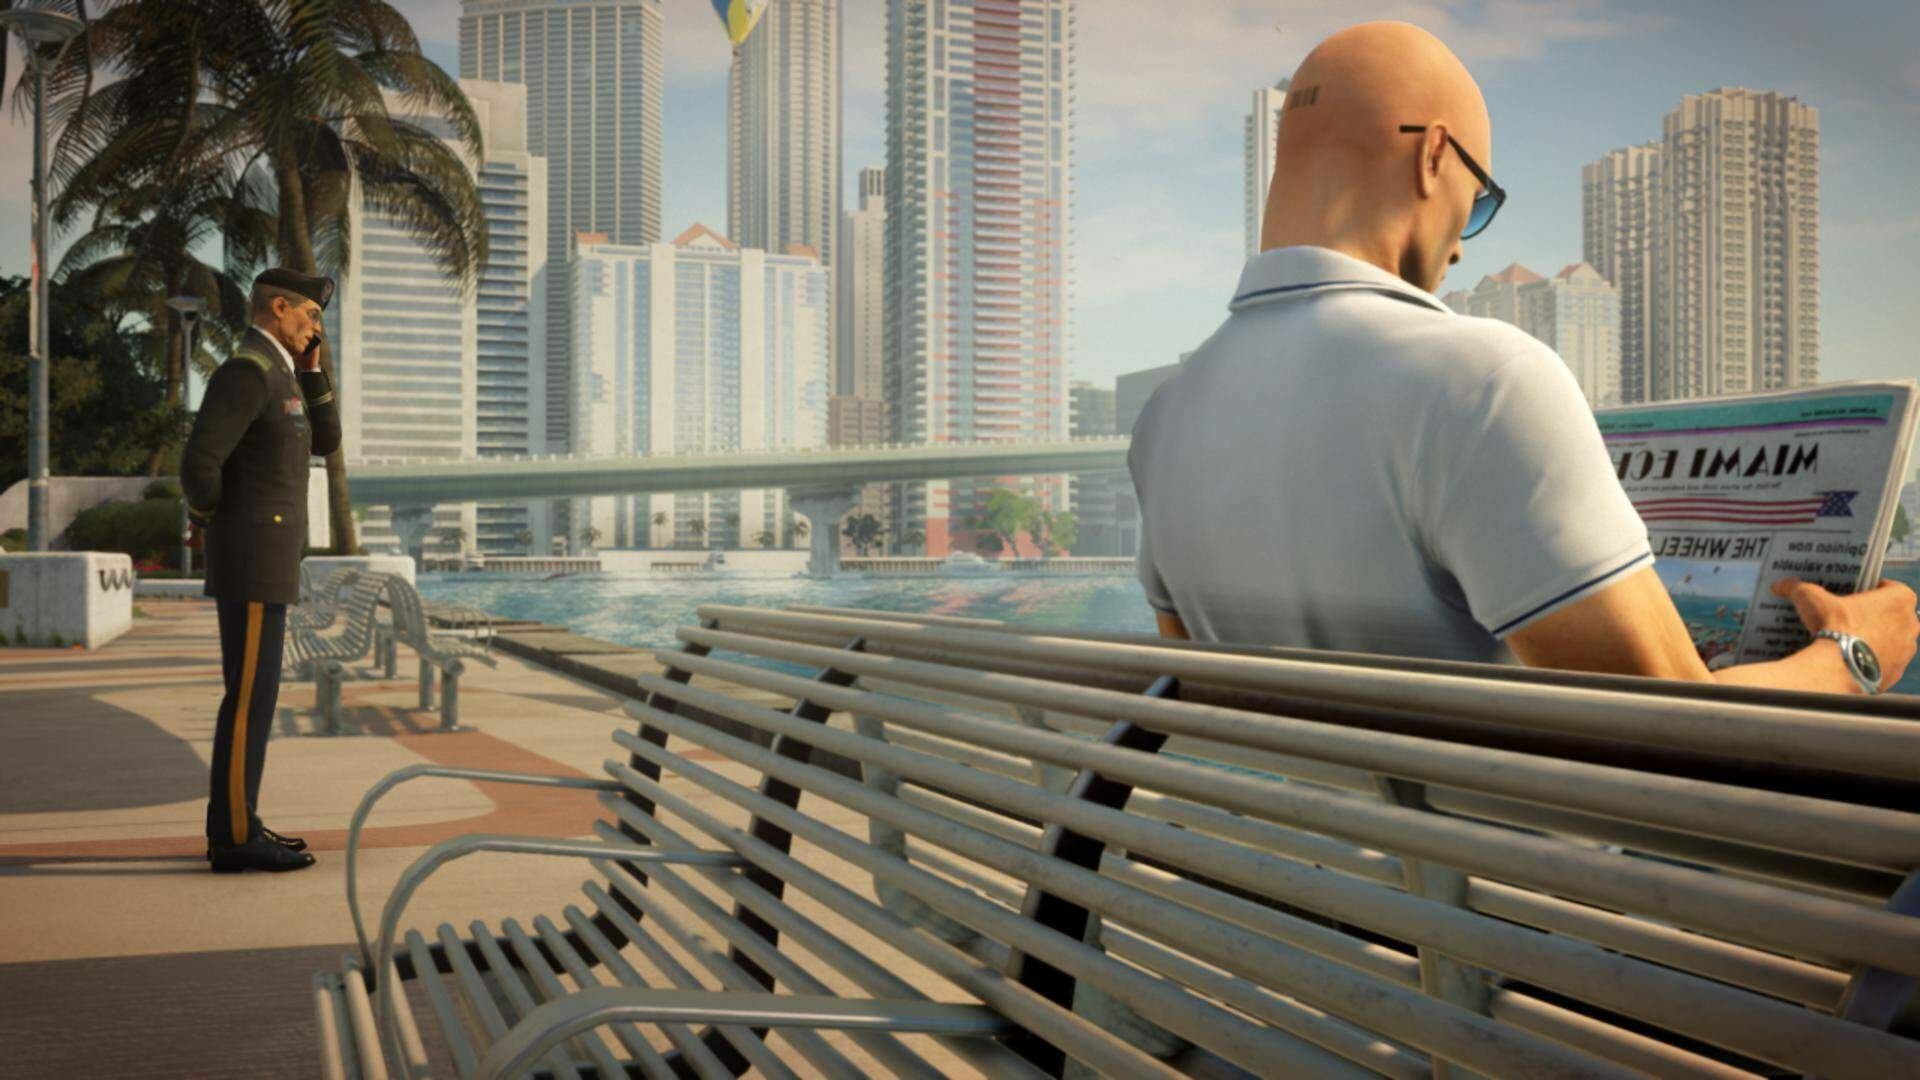 Hitman Developer IO Interactive Confirms a New Game is in the Works